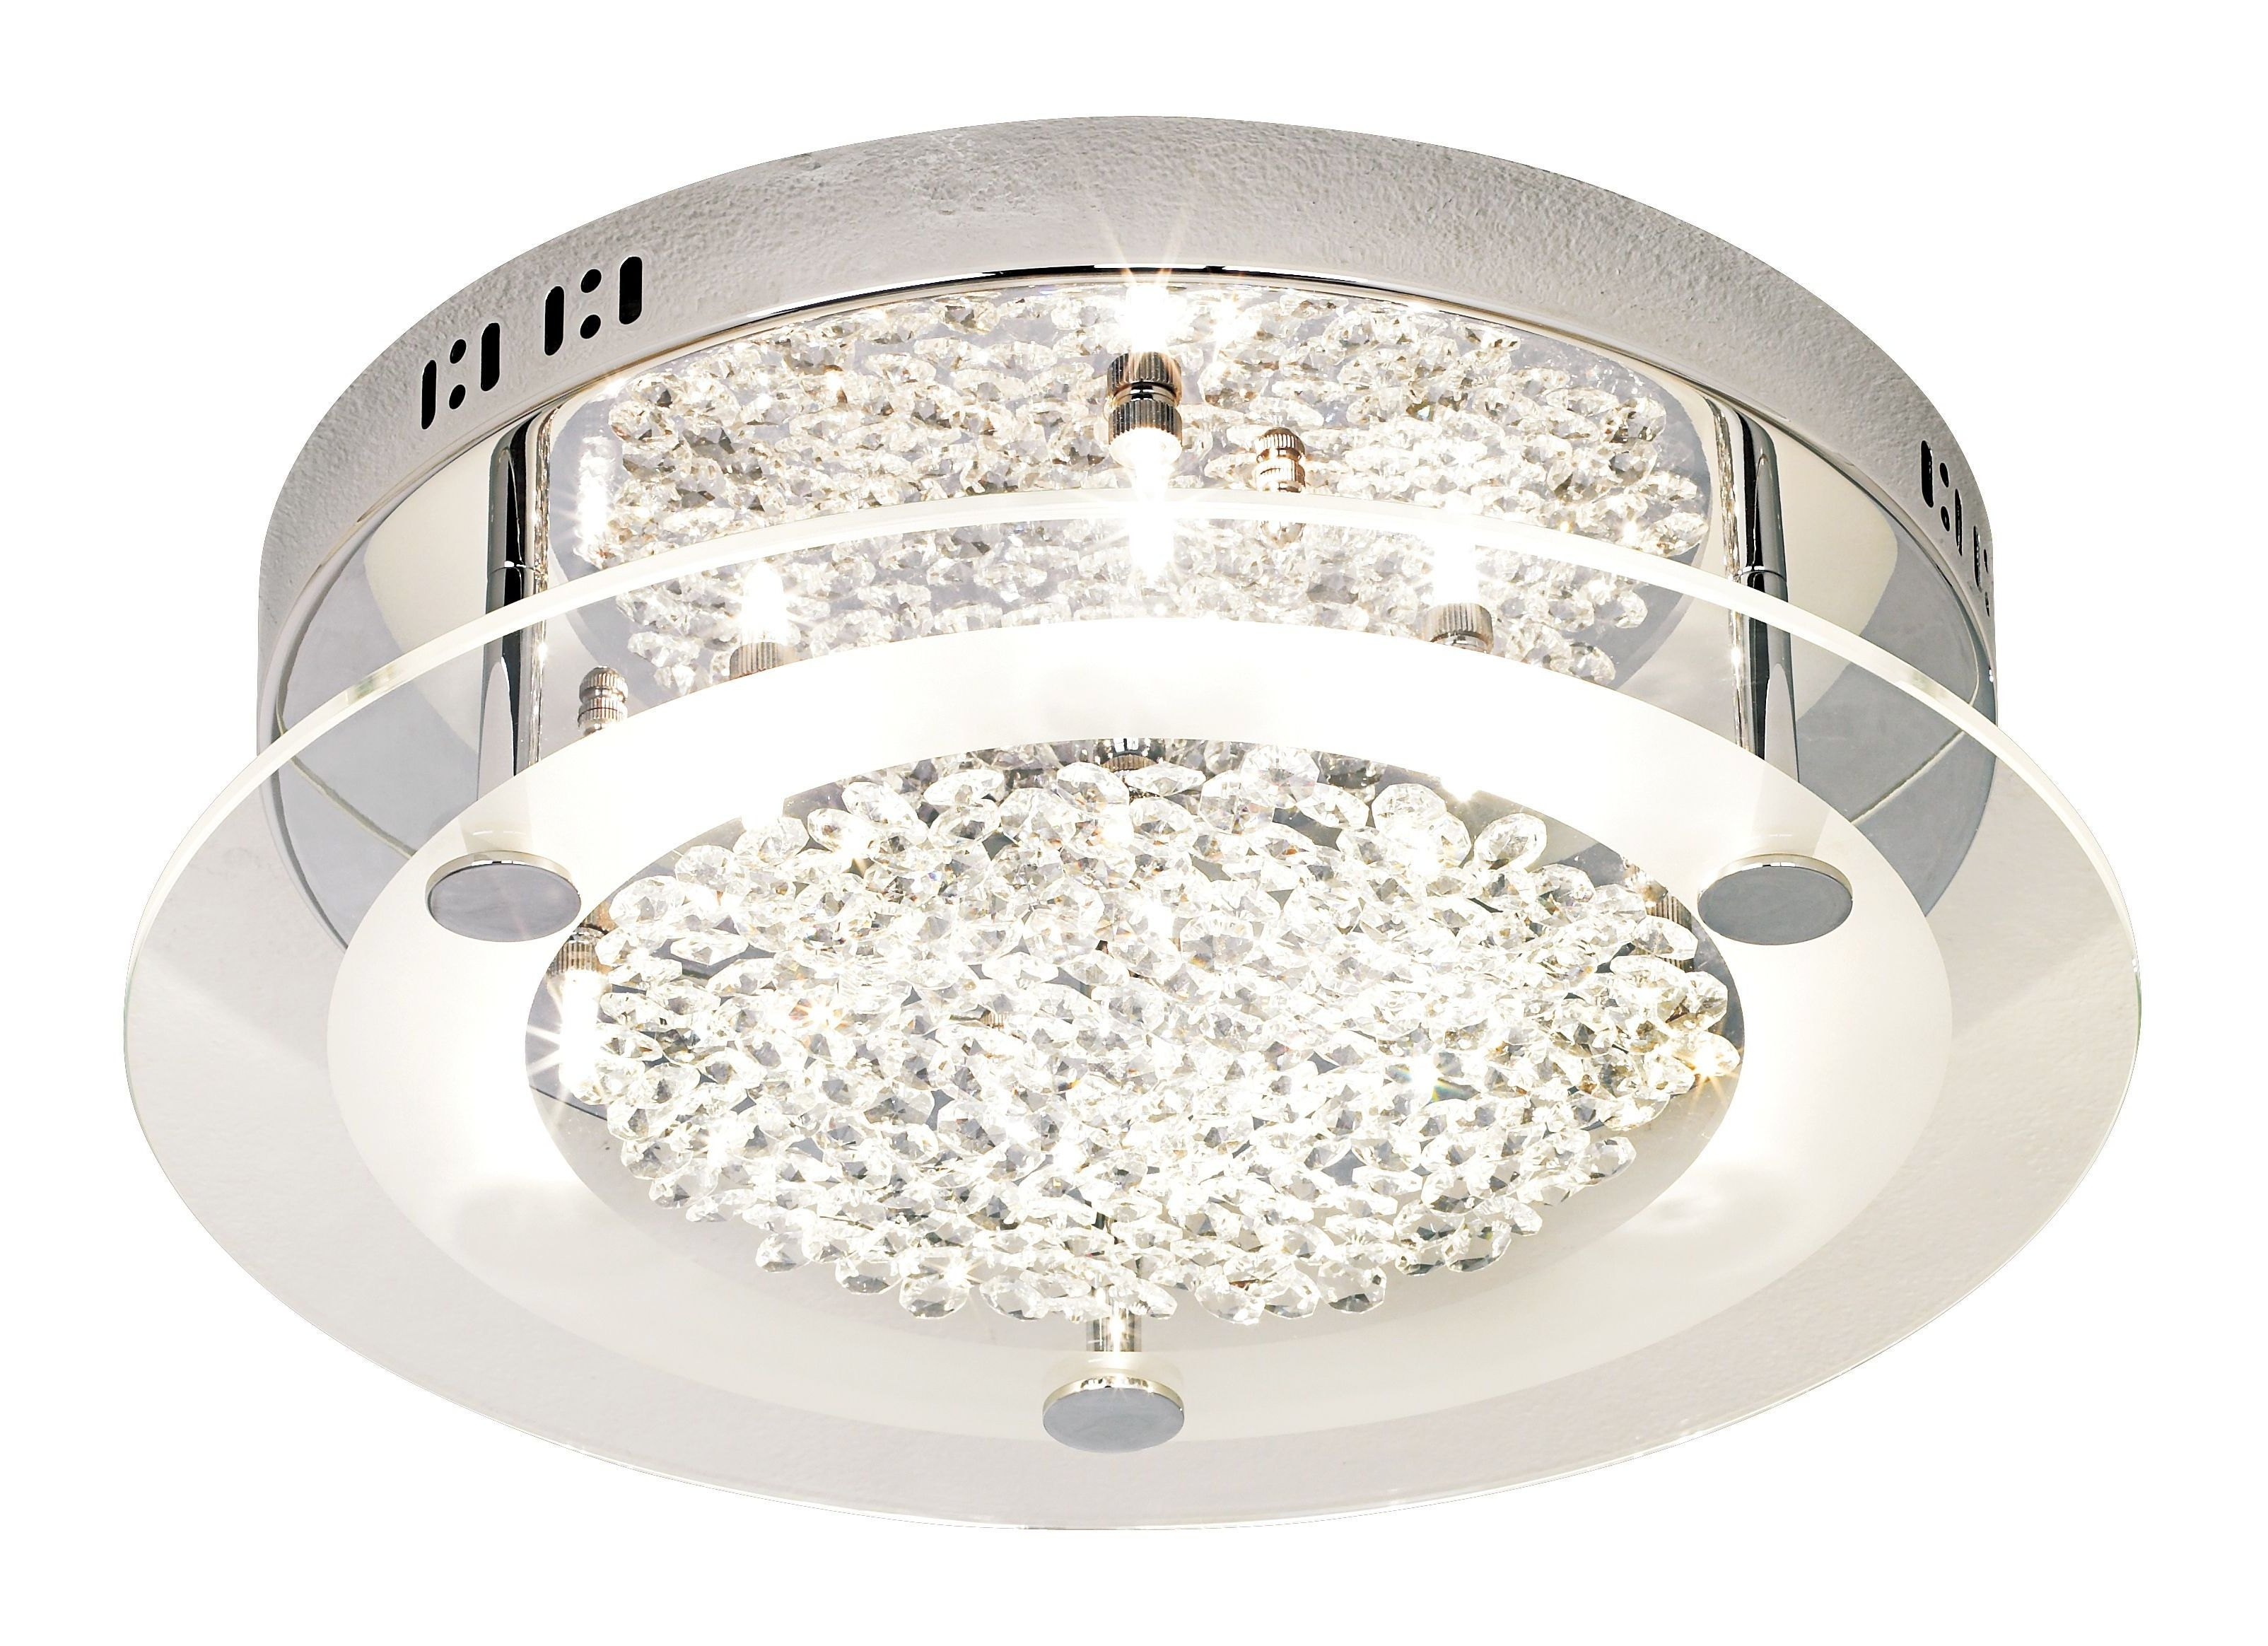 Chandelier Bathroom Ceiling Lights With Regard To Famous Stunning Bathroom Exhaust Fan With Light And Timer (View 14 of 20)